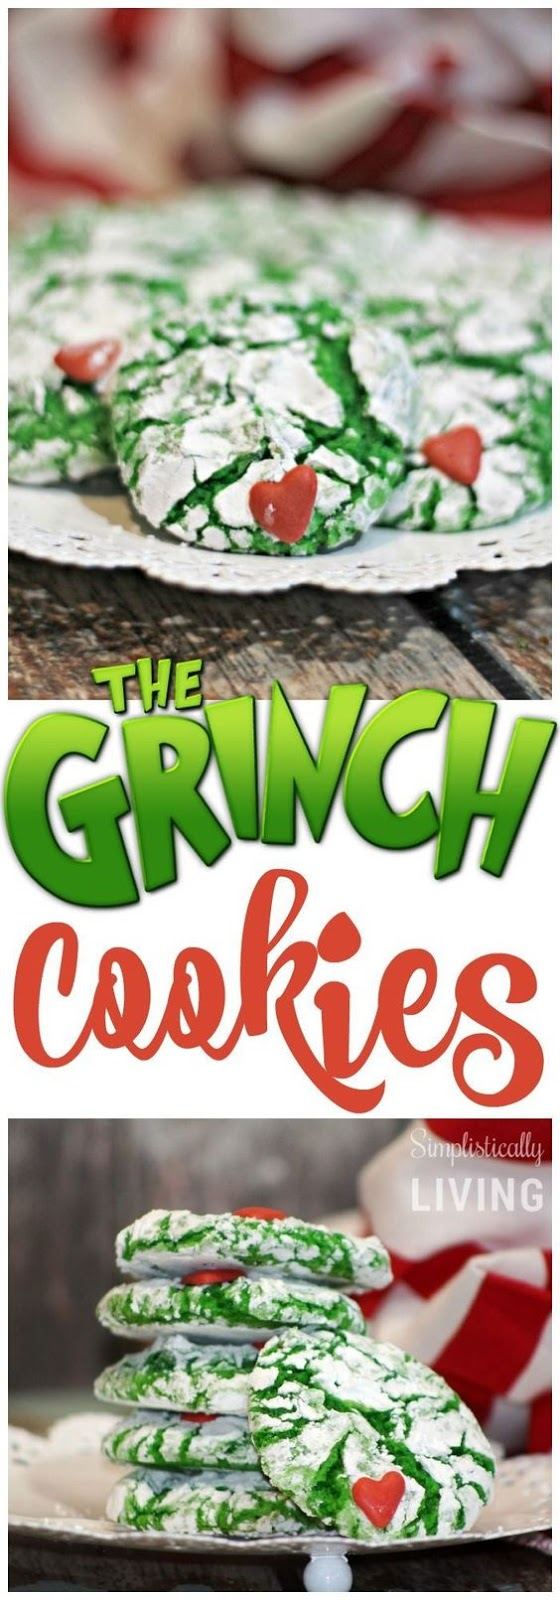 CRINKLY, CRANKY, GRINCH COOKIES #crinkly #cranky #grinch #cookies #cookierecipes #easycookierecipes